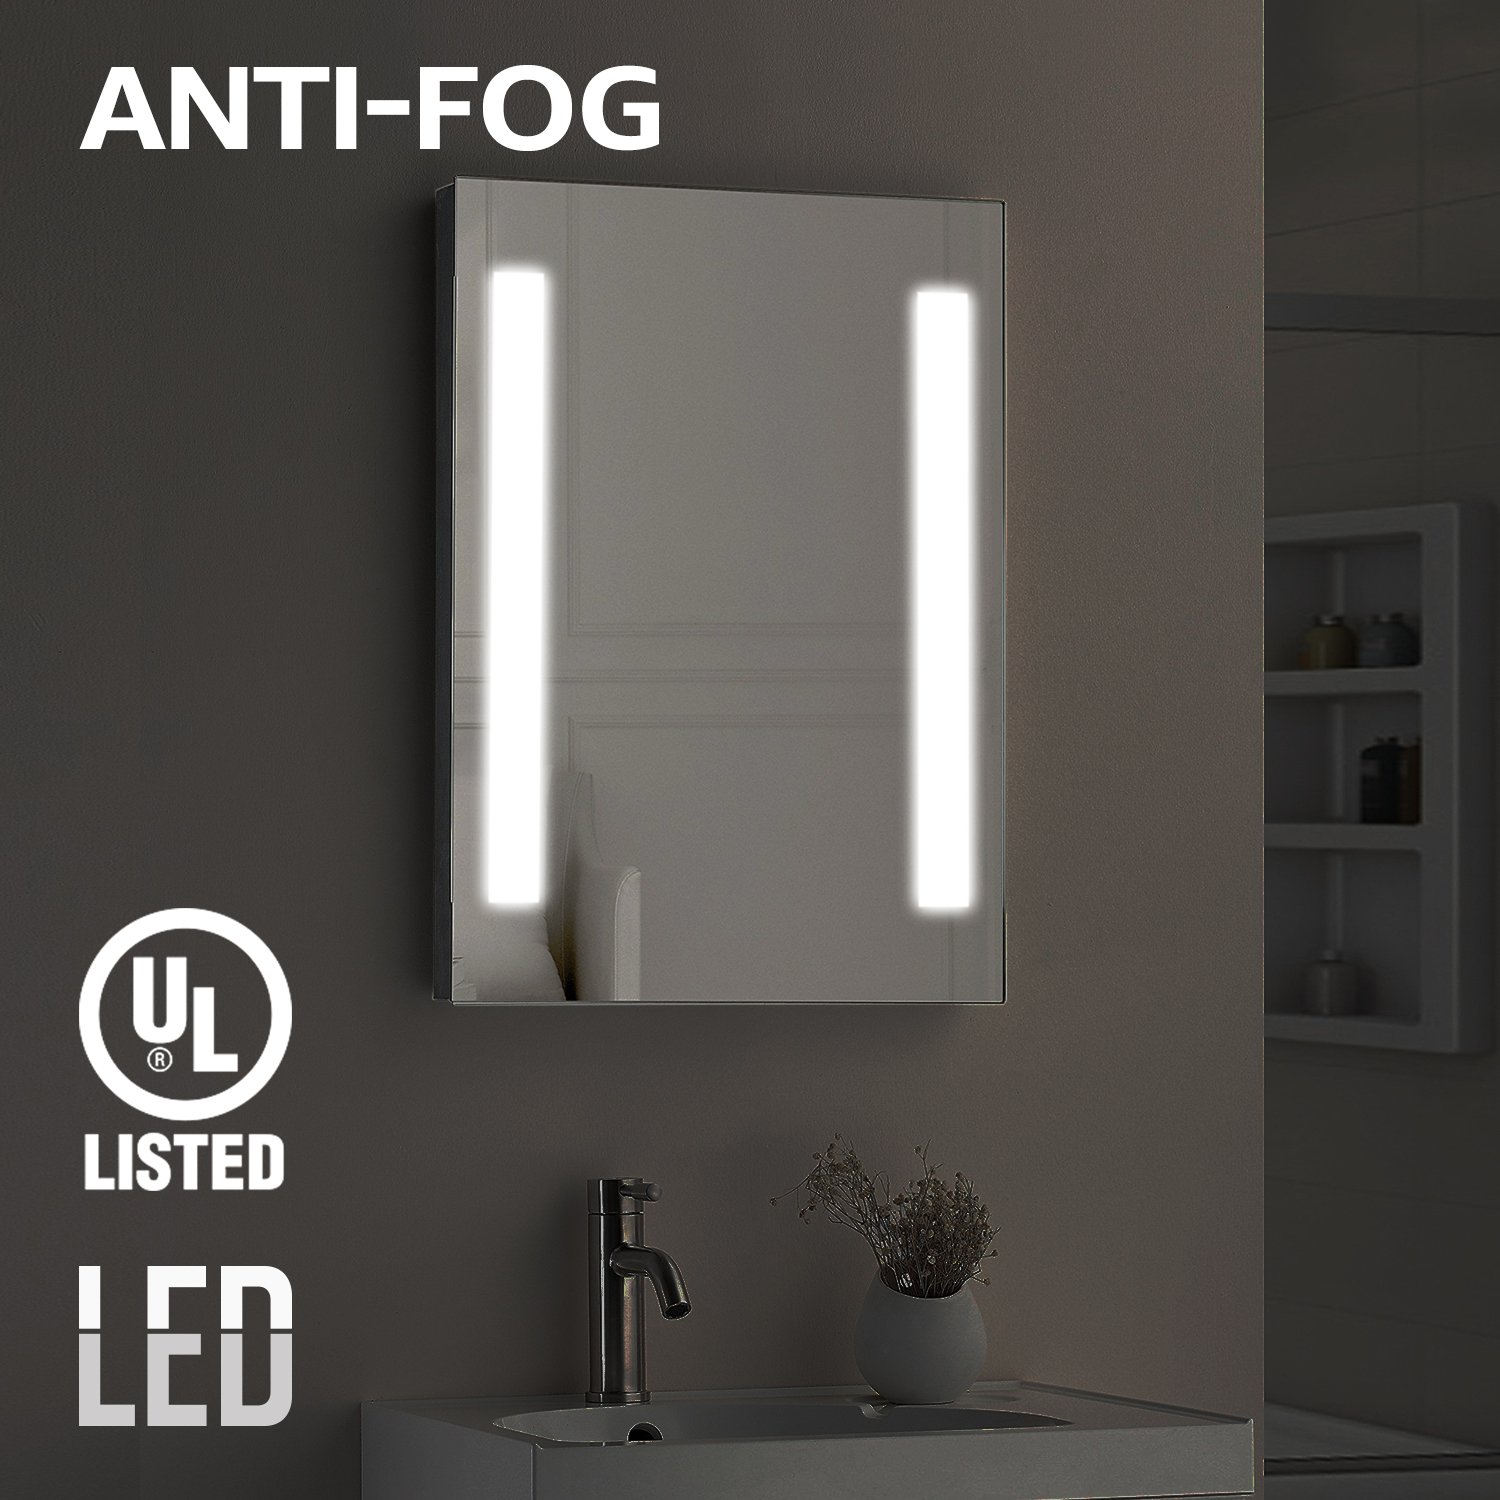 Fogless LED Illuminated Mirror Bathroom, UL-listed Wall Mounted Backlit Mirror 32' x 24' with 2 Lighted Ring